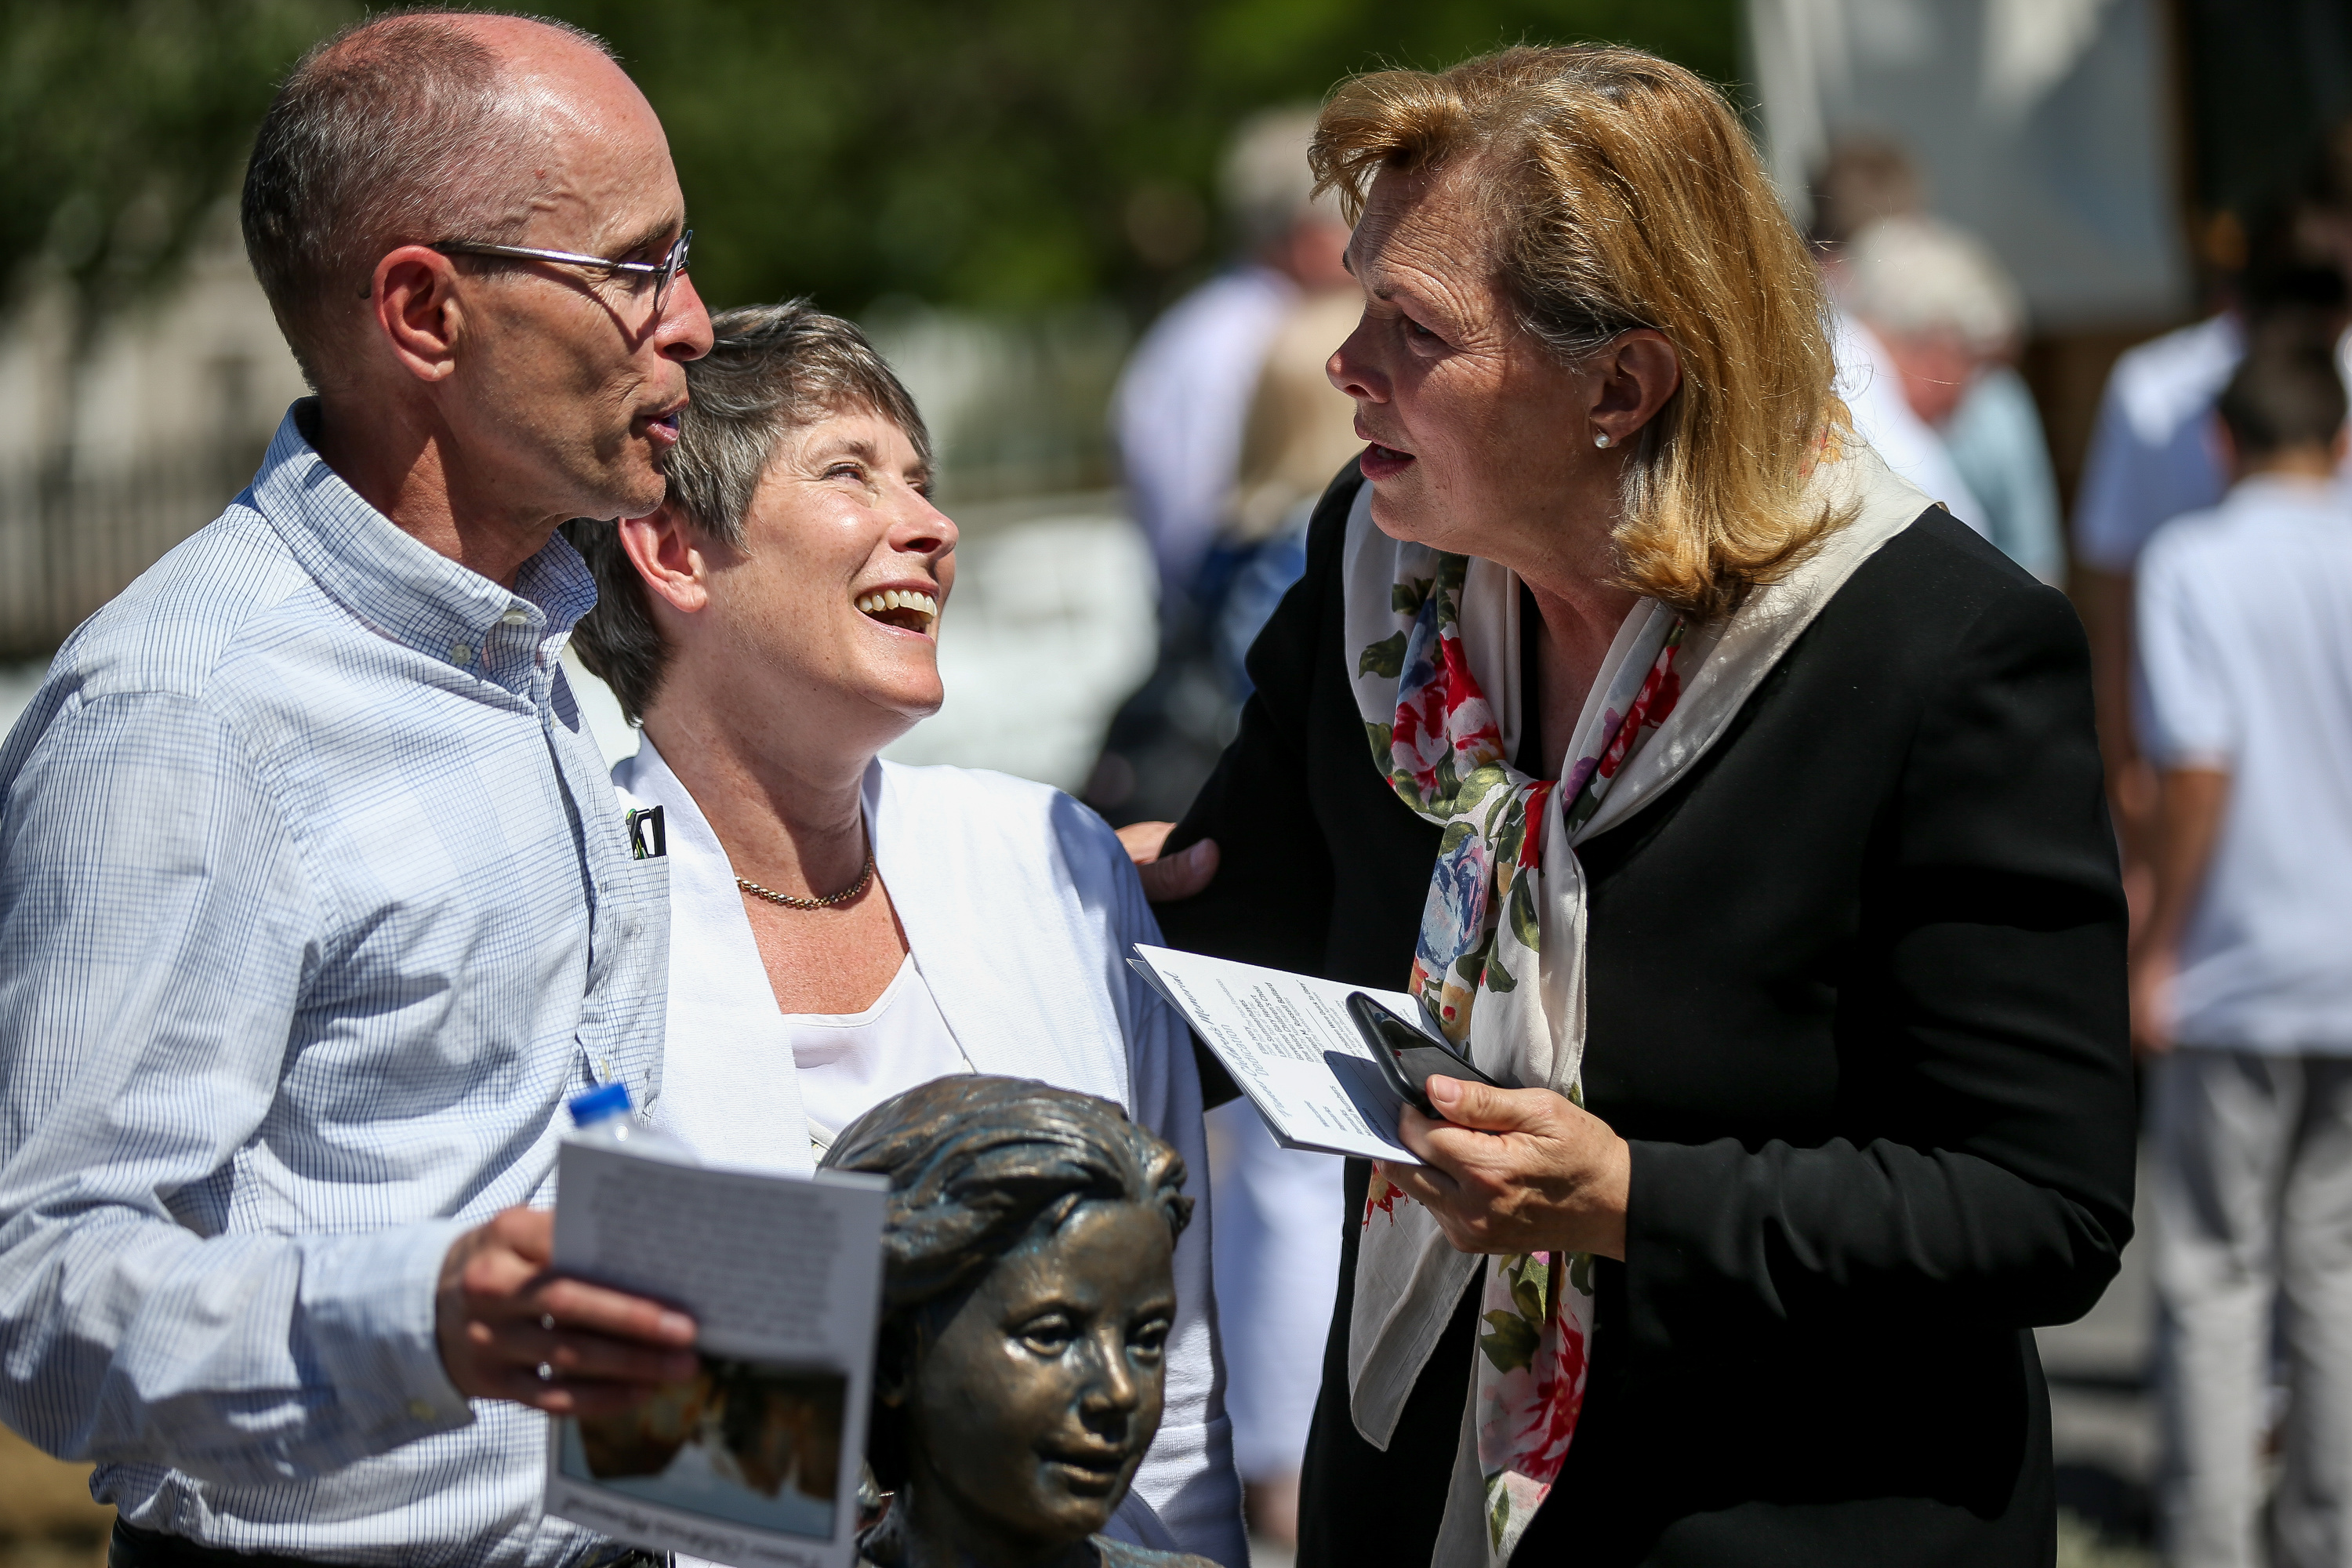 Sculptors Roger and Stefanie Hunt chat with Debbie Christiansen after the dedication of the Children's Pioneer Memorial at This Is the Place Heritage Park in Salt Lake City on Saturday, July 20, 2019.